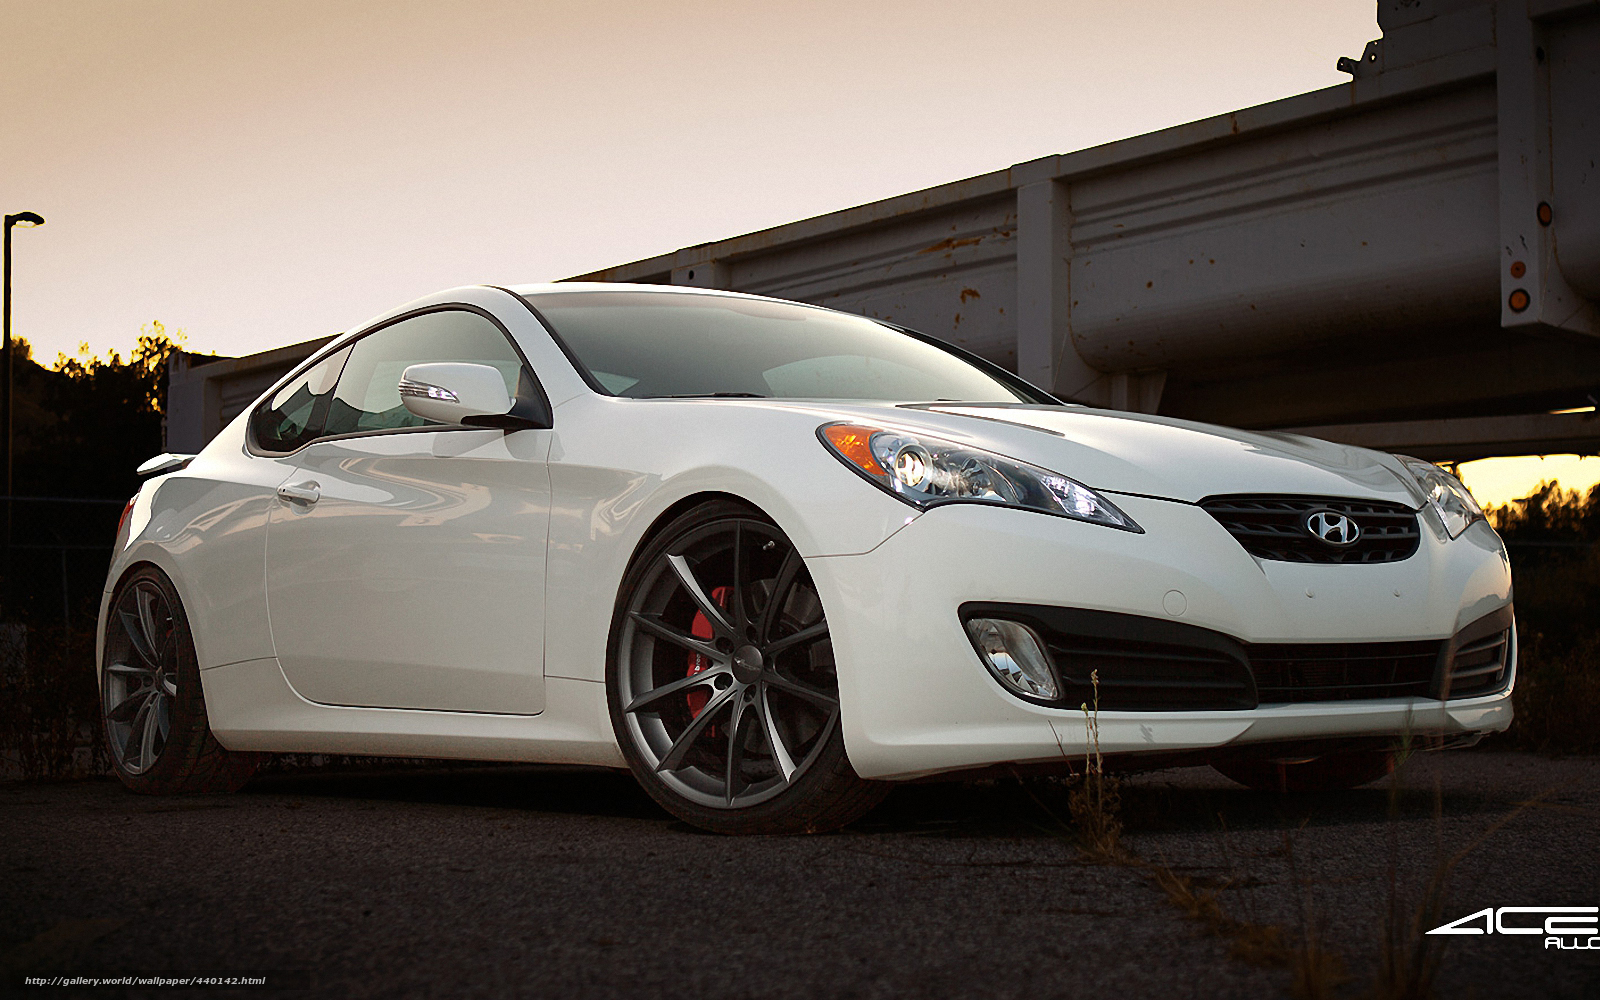 Download wallpaper hyundai genesis coupe white free desktop wallpaper in the resolution 1600x1000 picture 440142